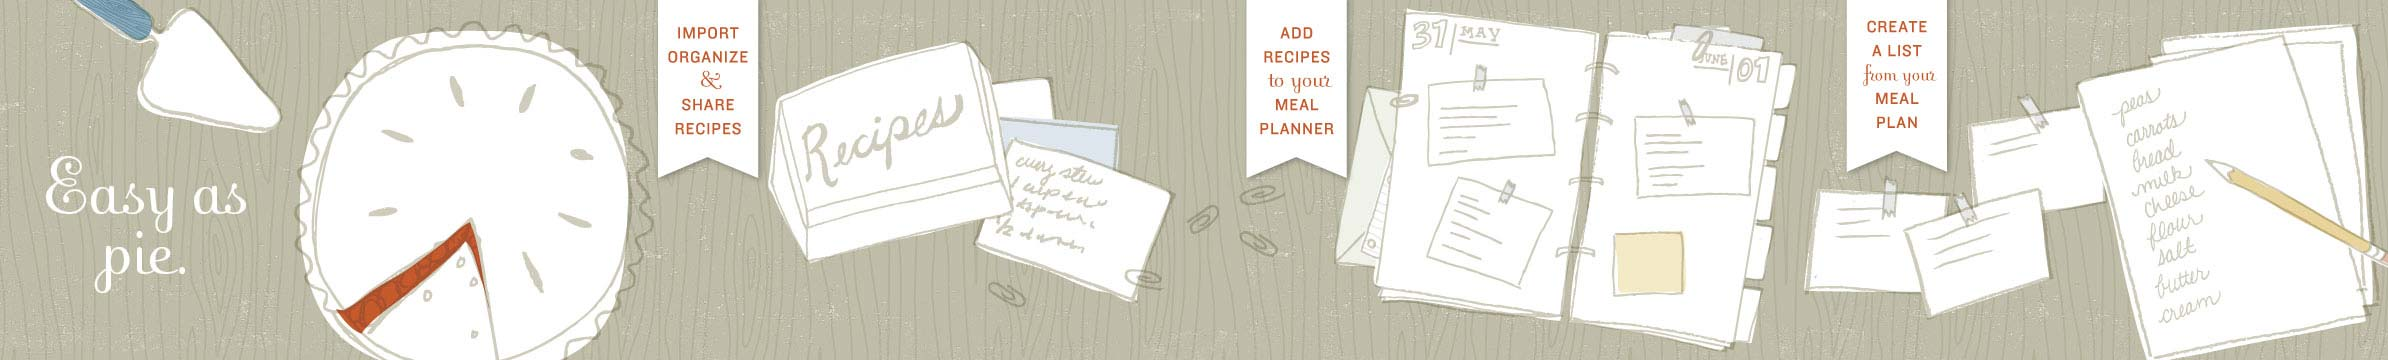 Recipe Book Meal Planner Shopping List Tour